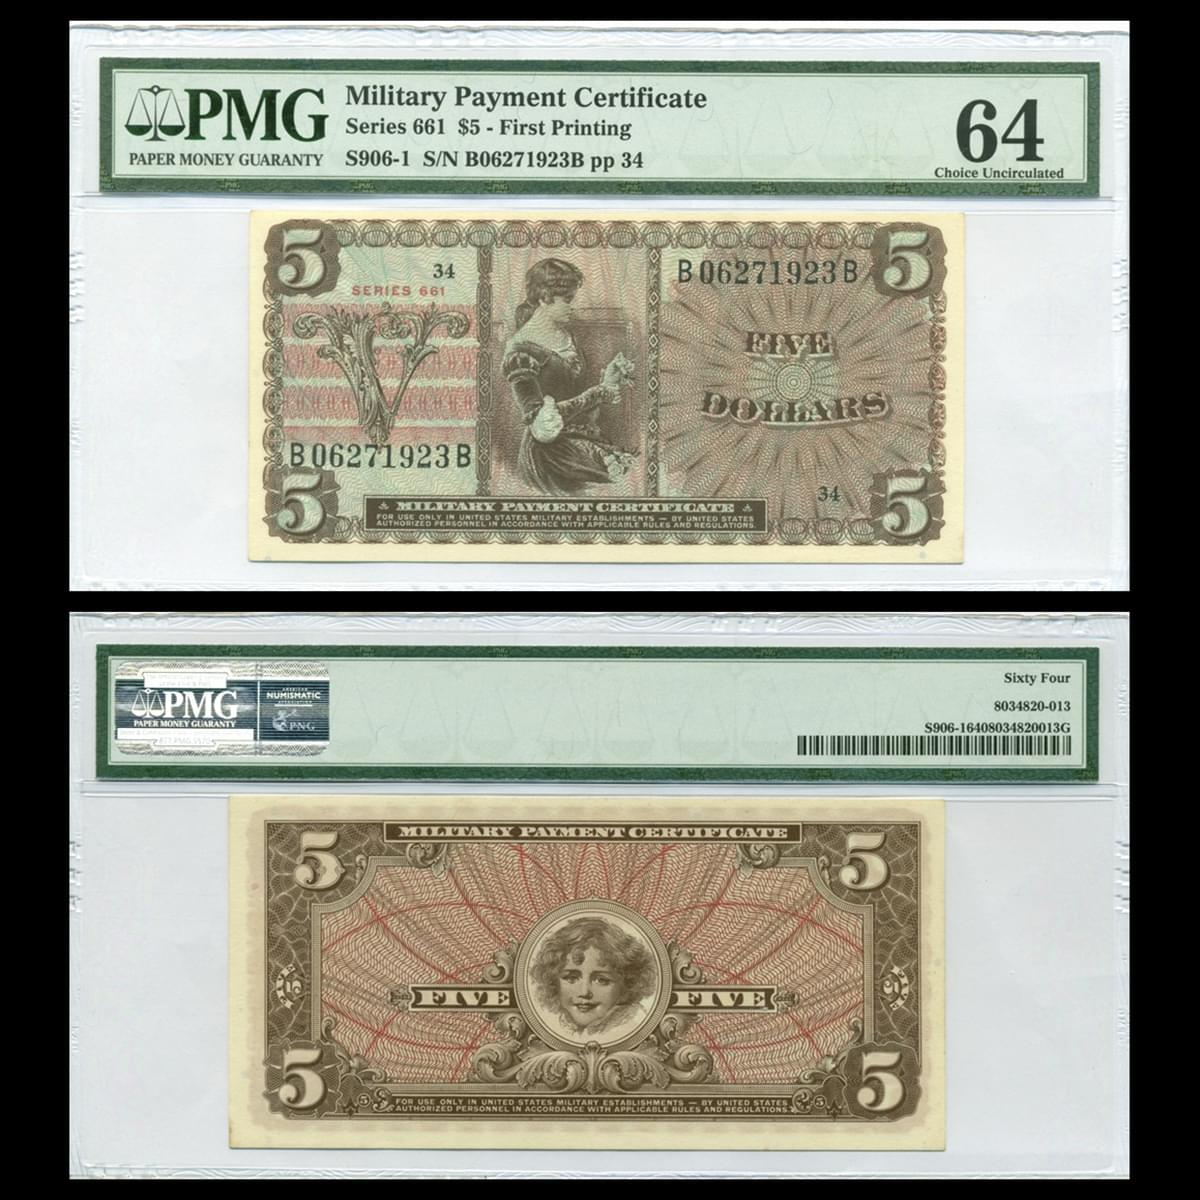 5 dollars MPC series 661